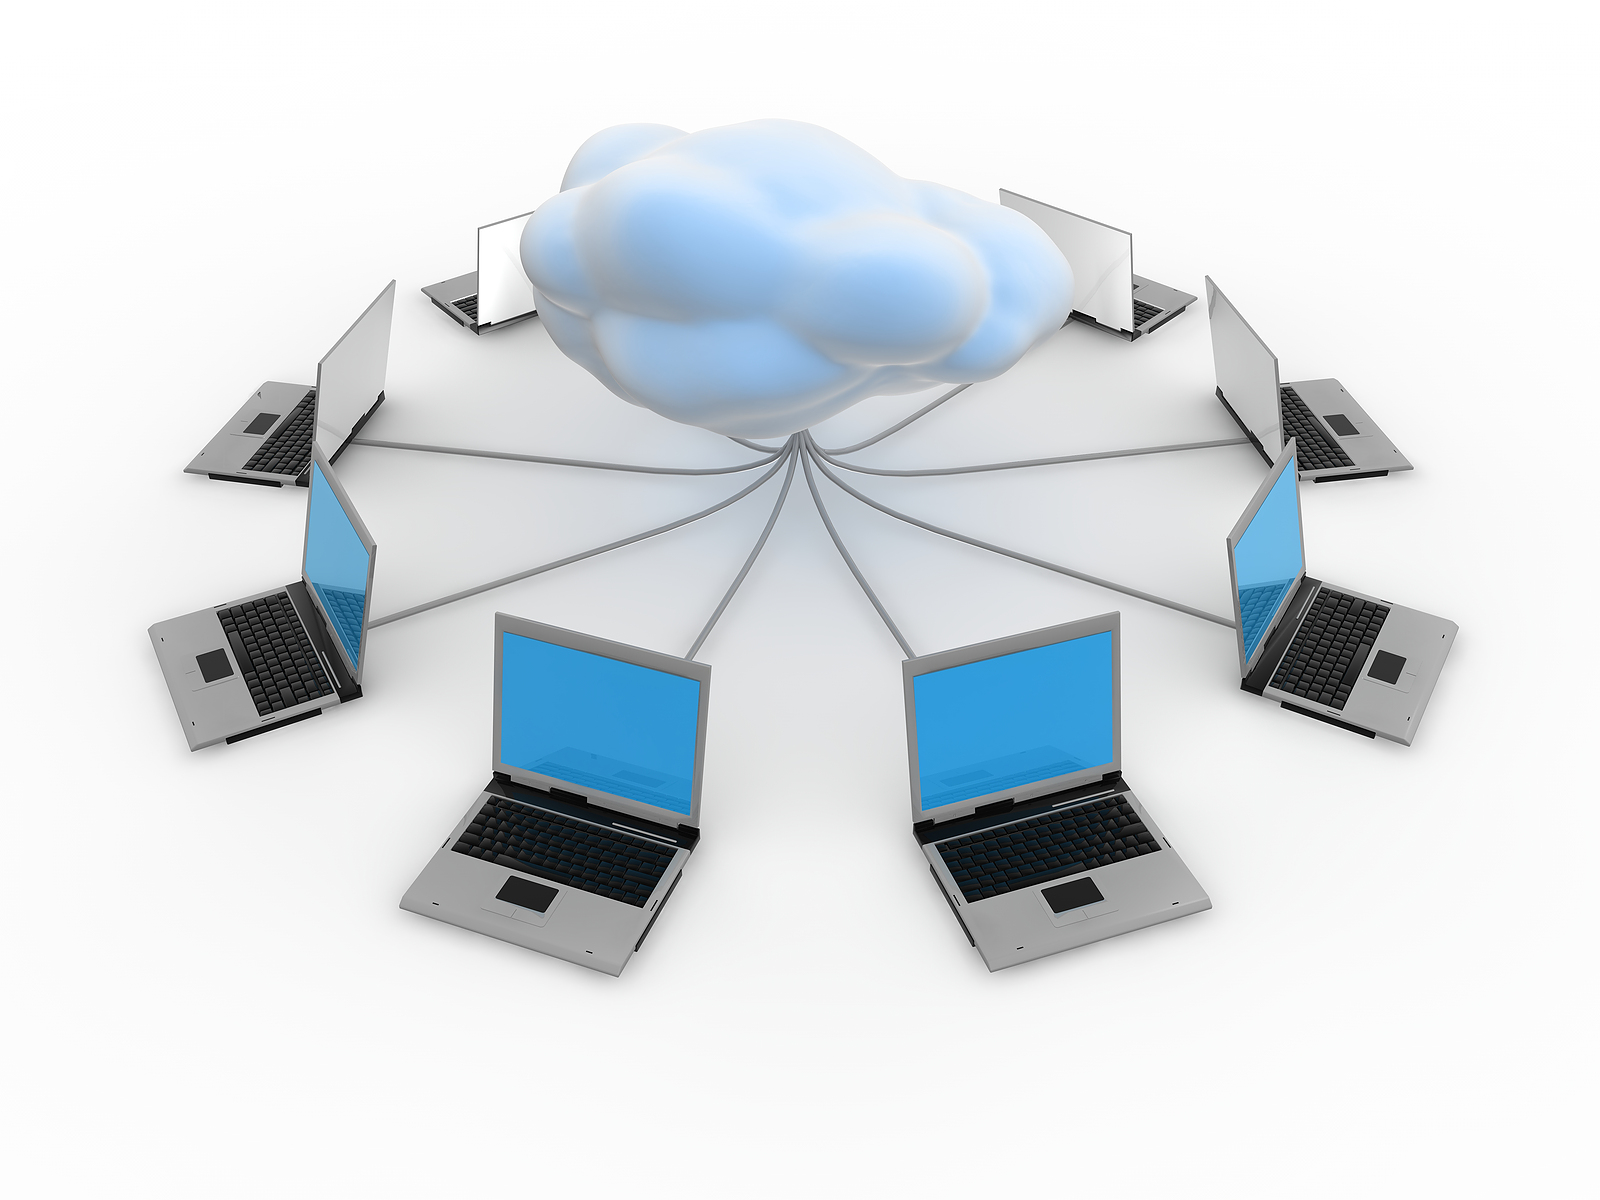 7 Step Guide to Successfully Migrating to the Cloud: Review Your Current Disaster Plan